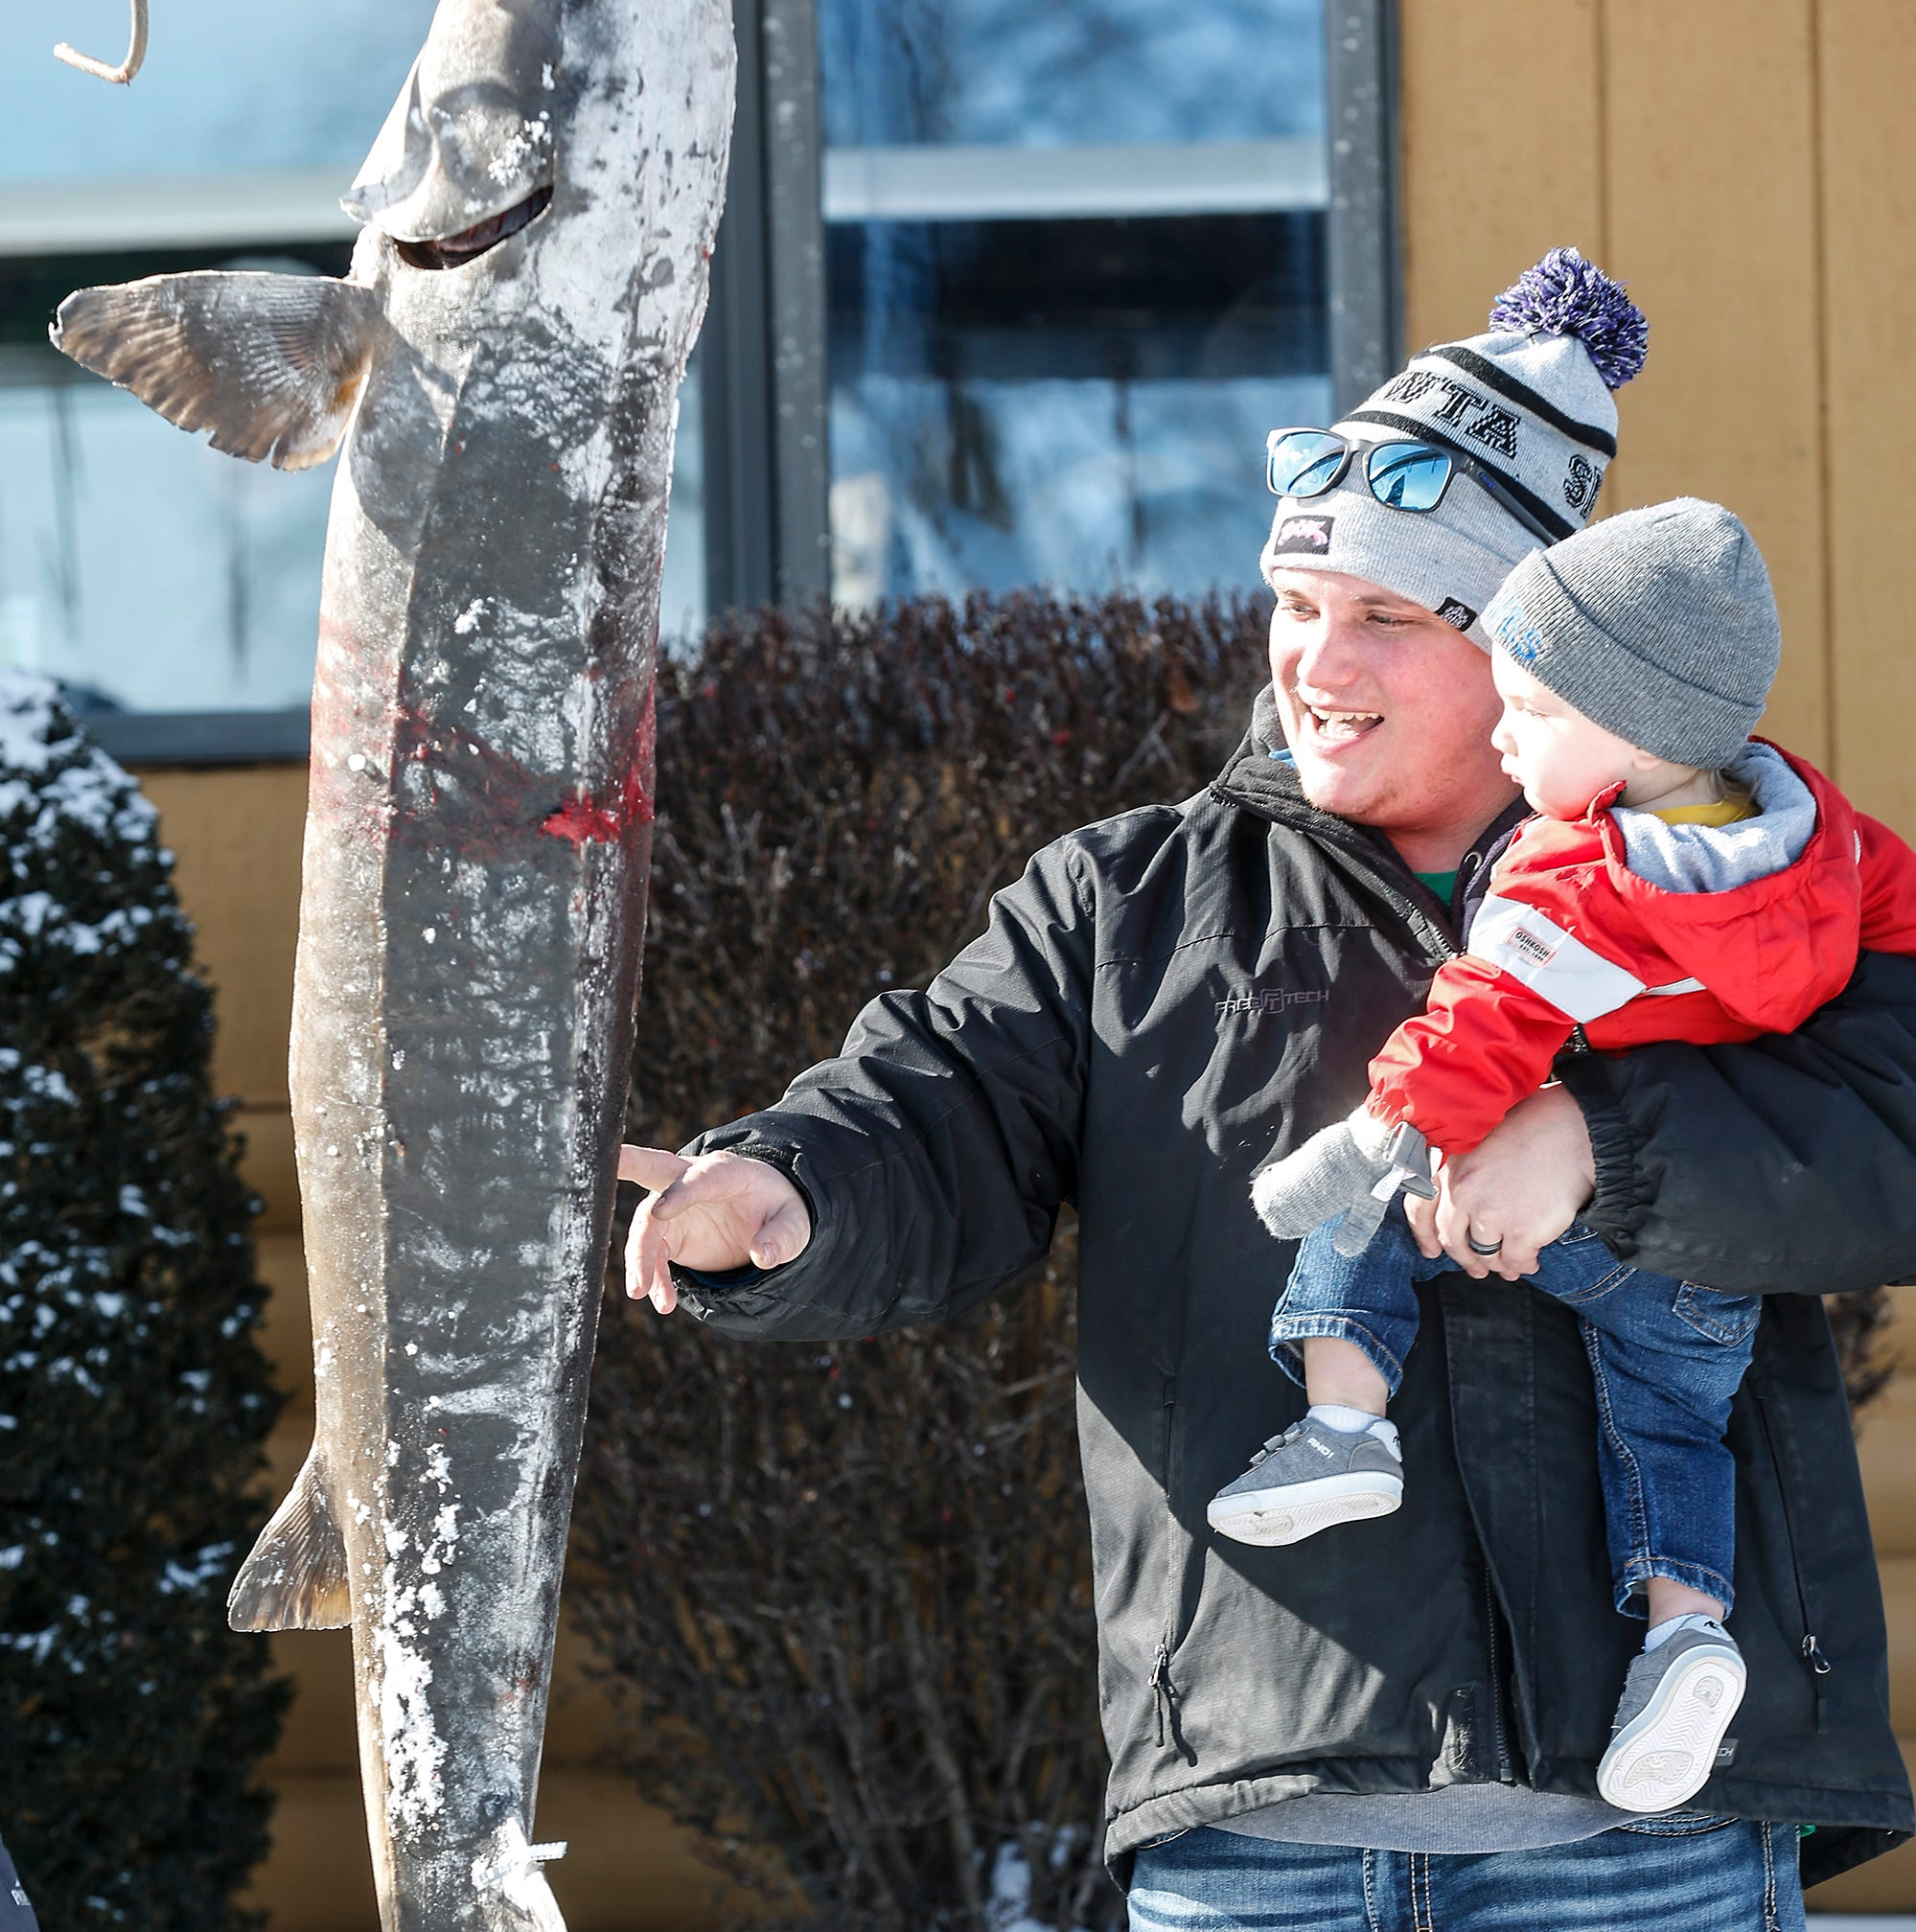 Opening day of sturgeon spearing season sees excitement, big fish despite chilly weather